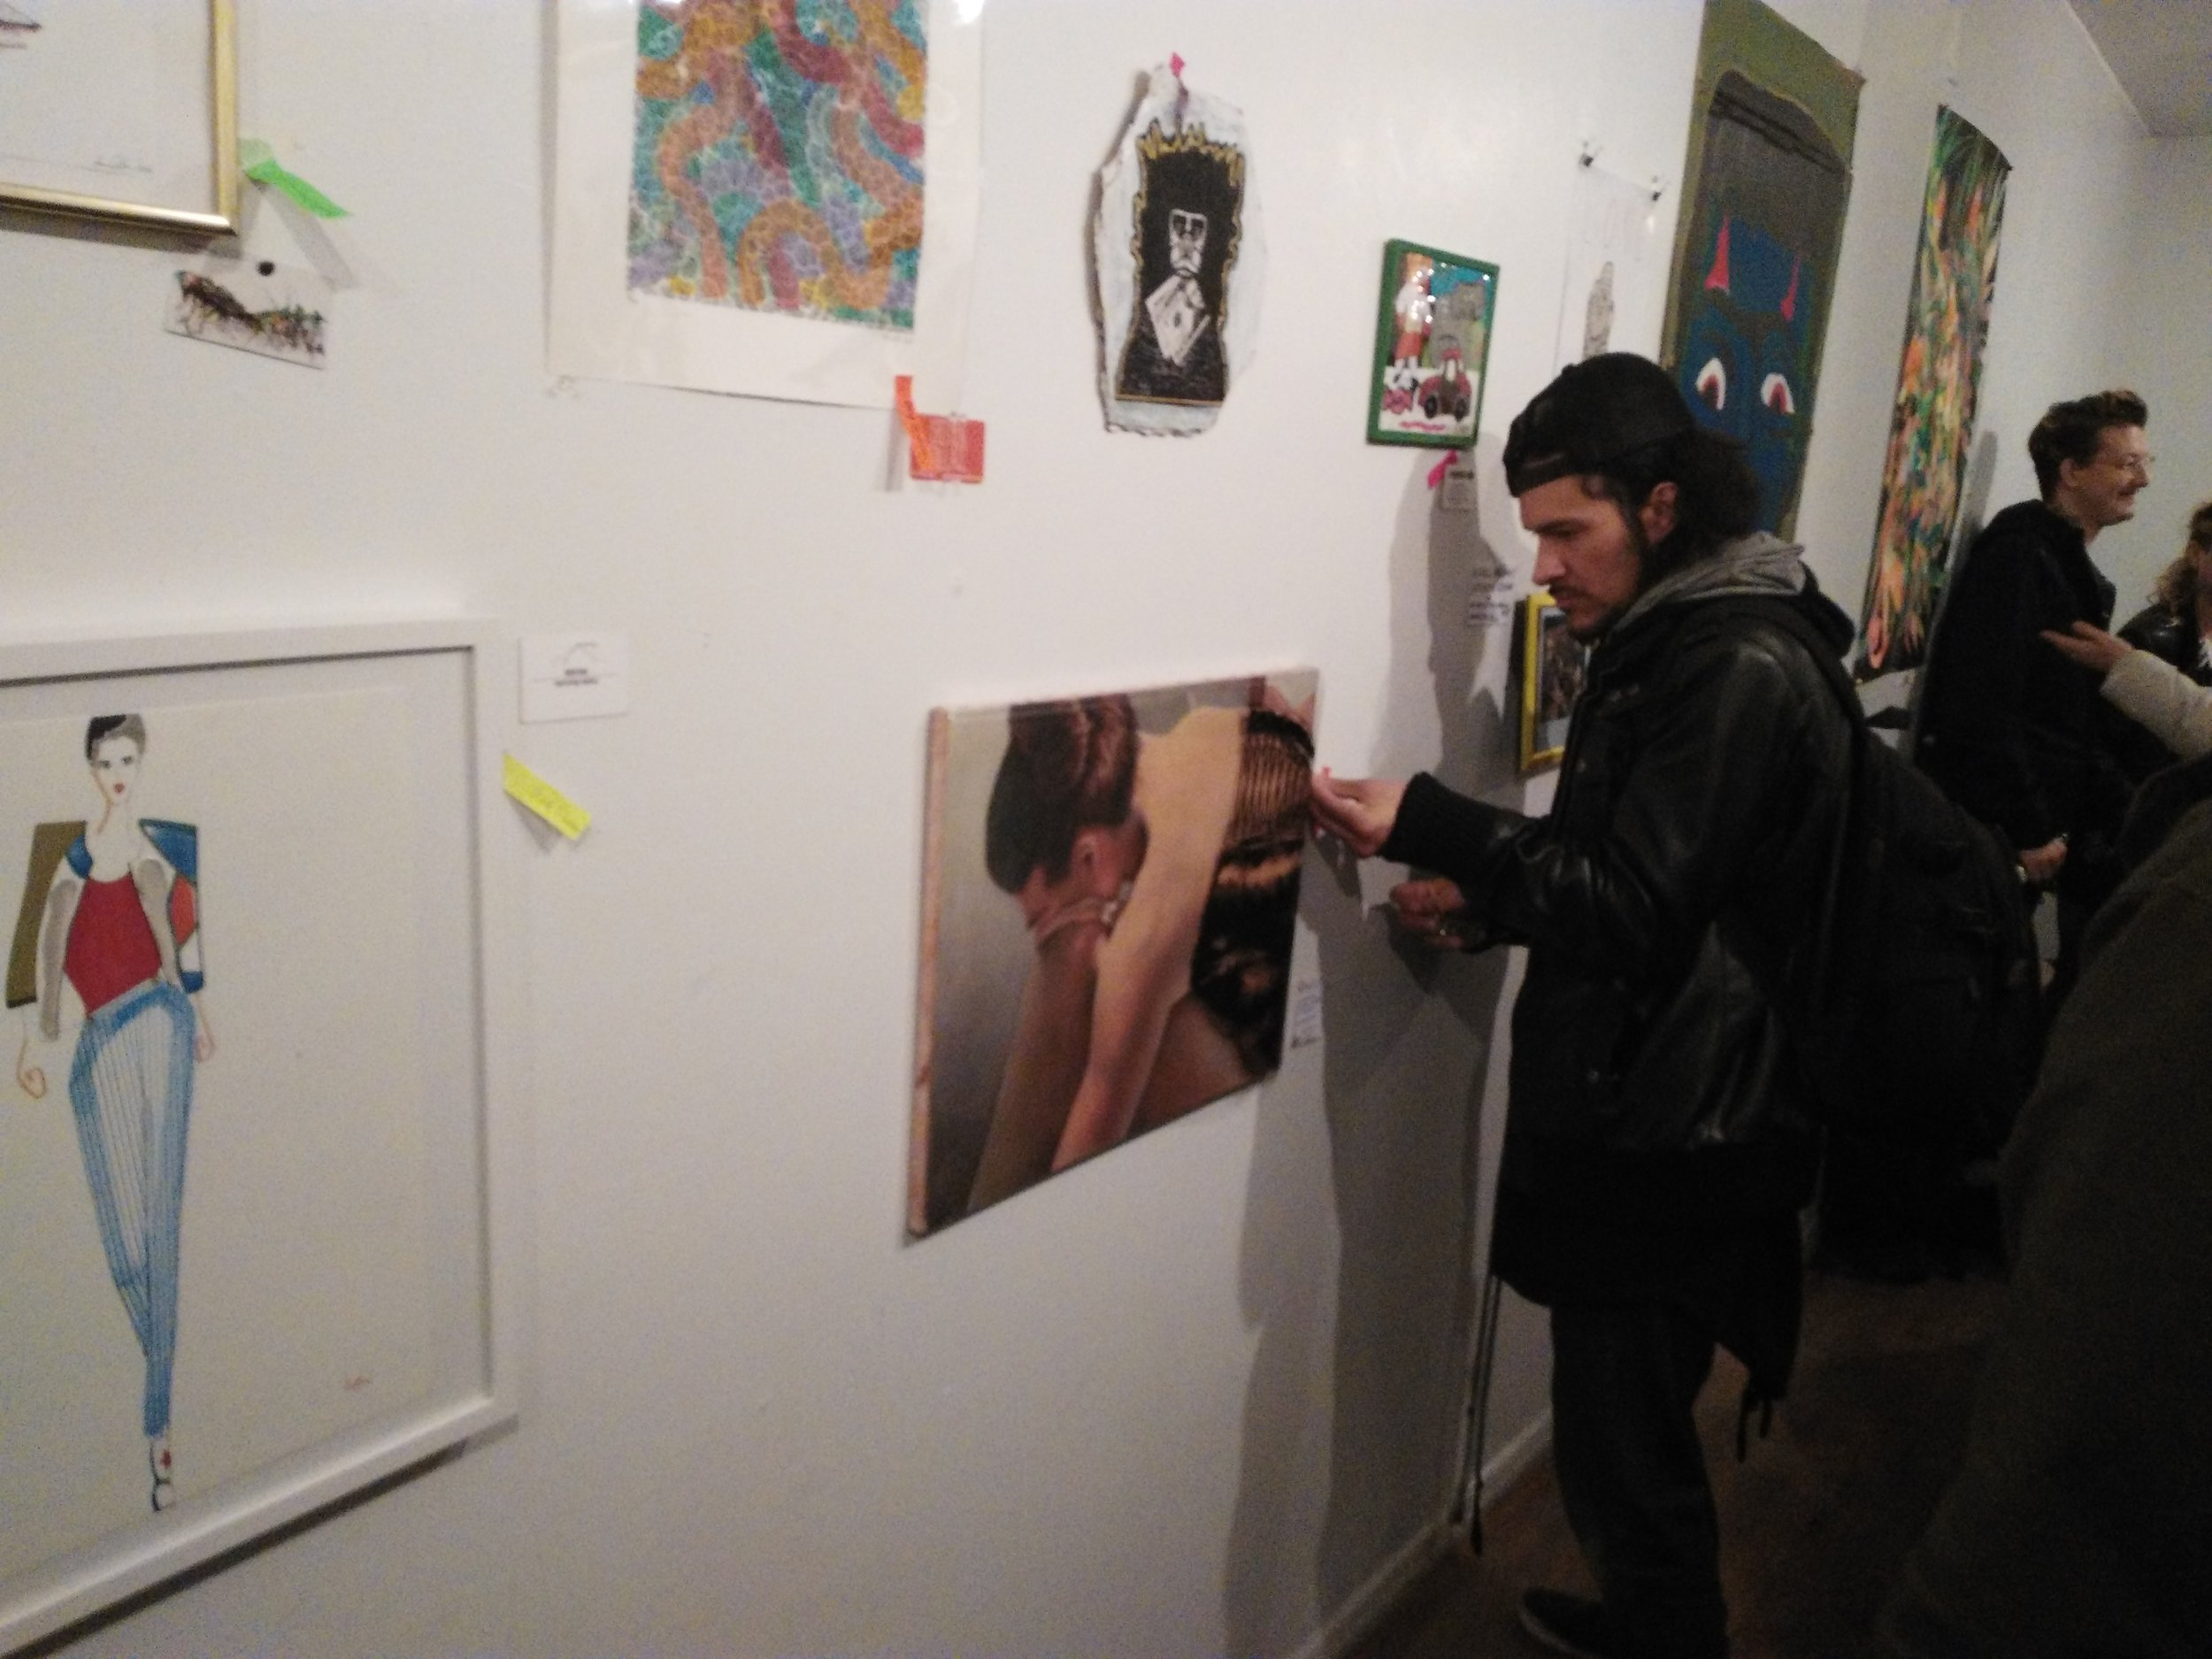 A man places a signed Post-it next to a piece of art to claim it. Just a few minutes into the event, all of the artwork had already been claimed.